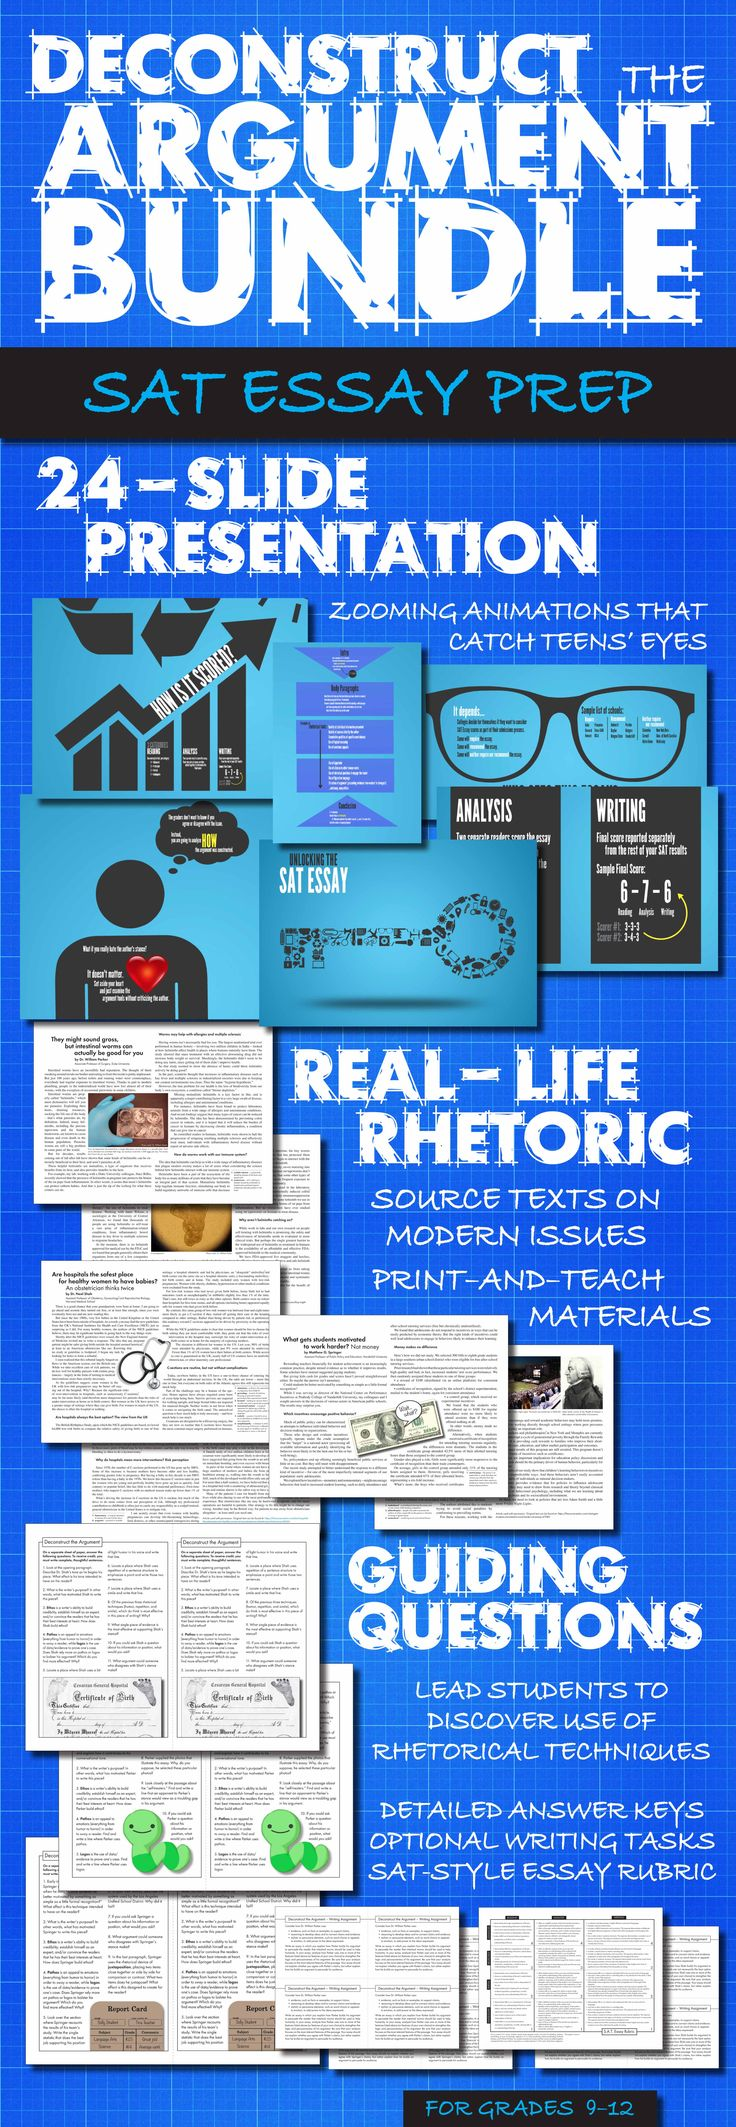 Help your students prep for the new rhetoric-based SAT Essay. Print-and-teach materials. #SATEssay #HighSchoolEnglish